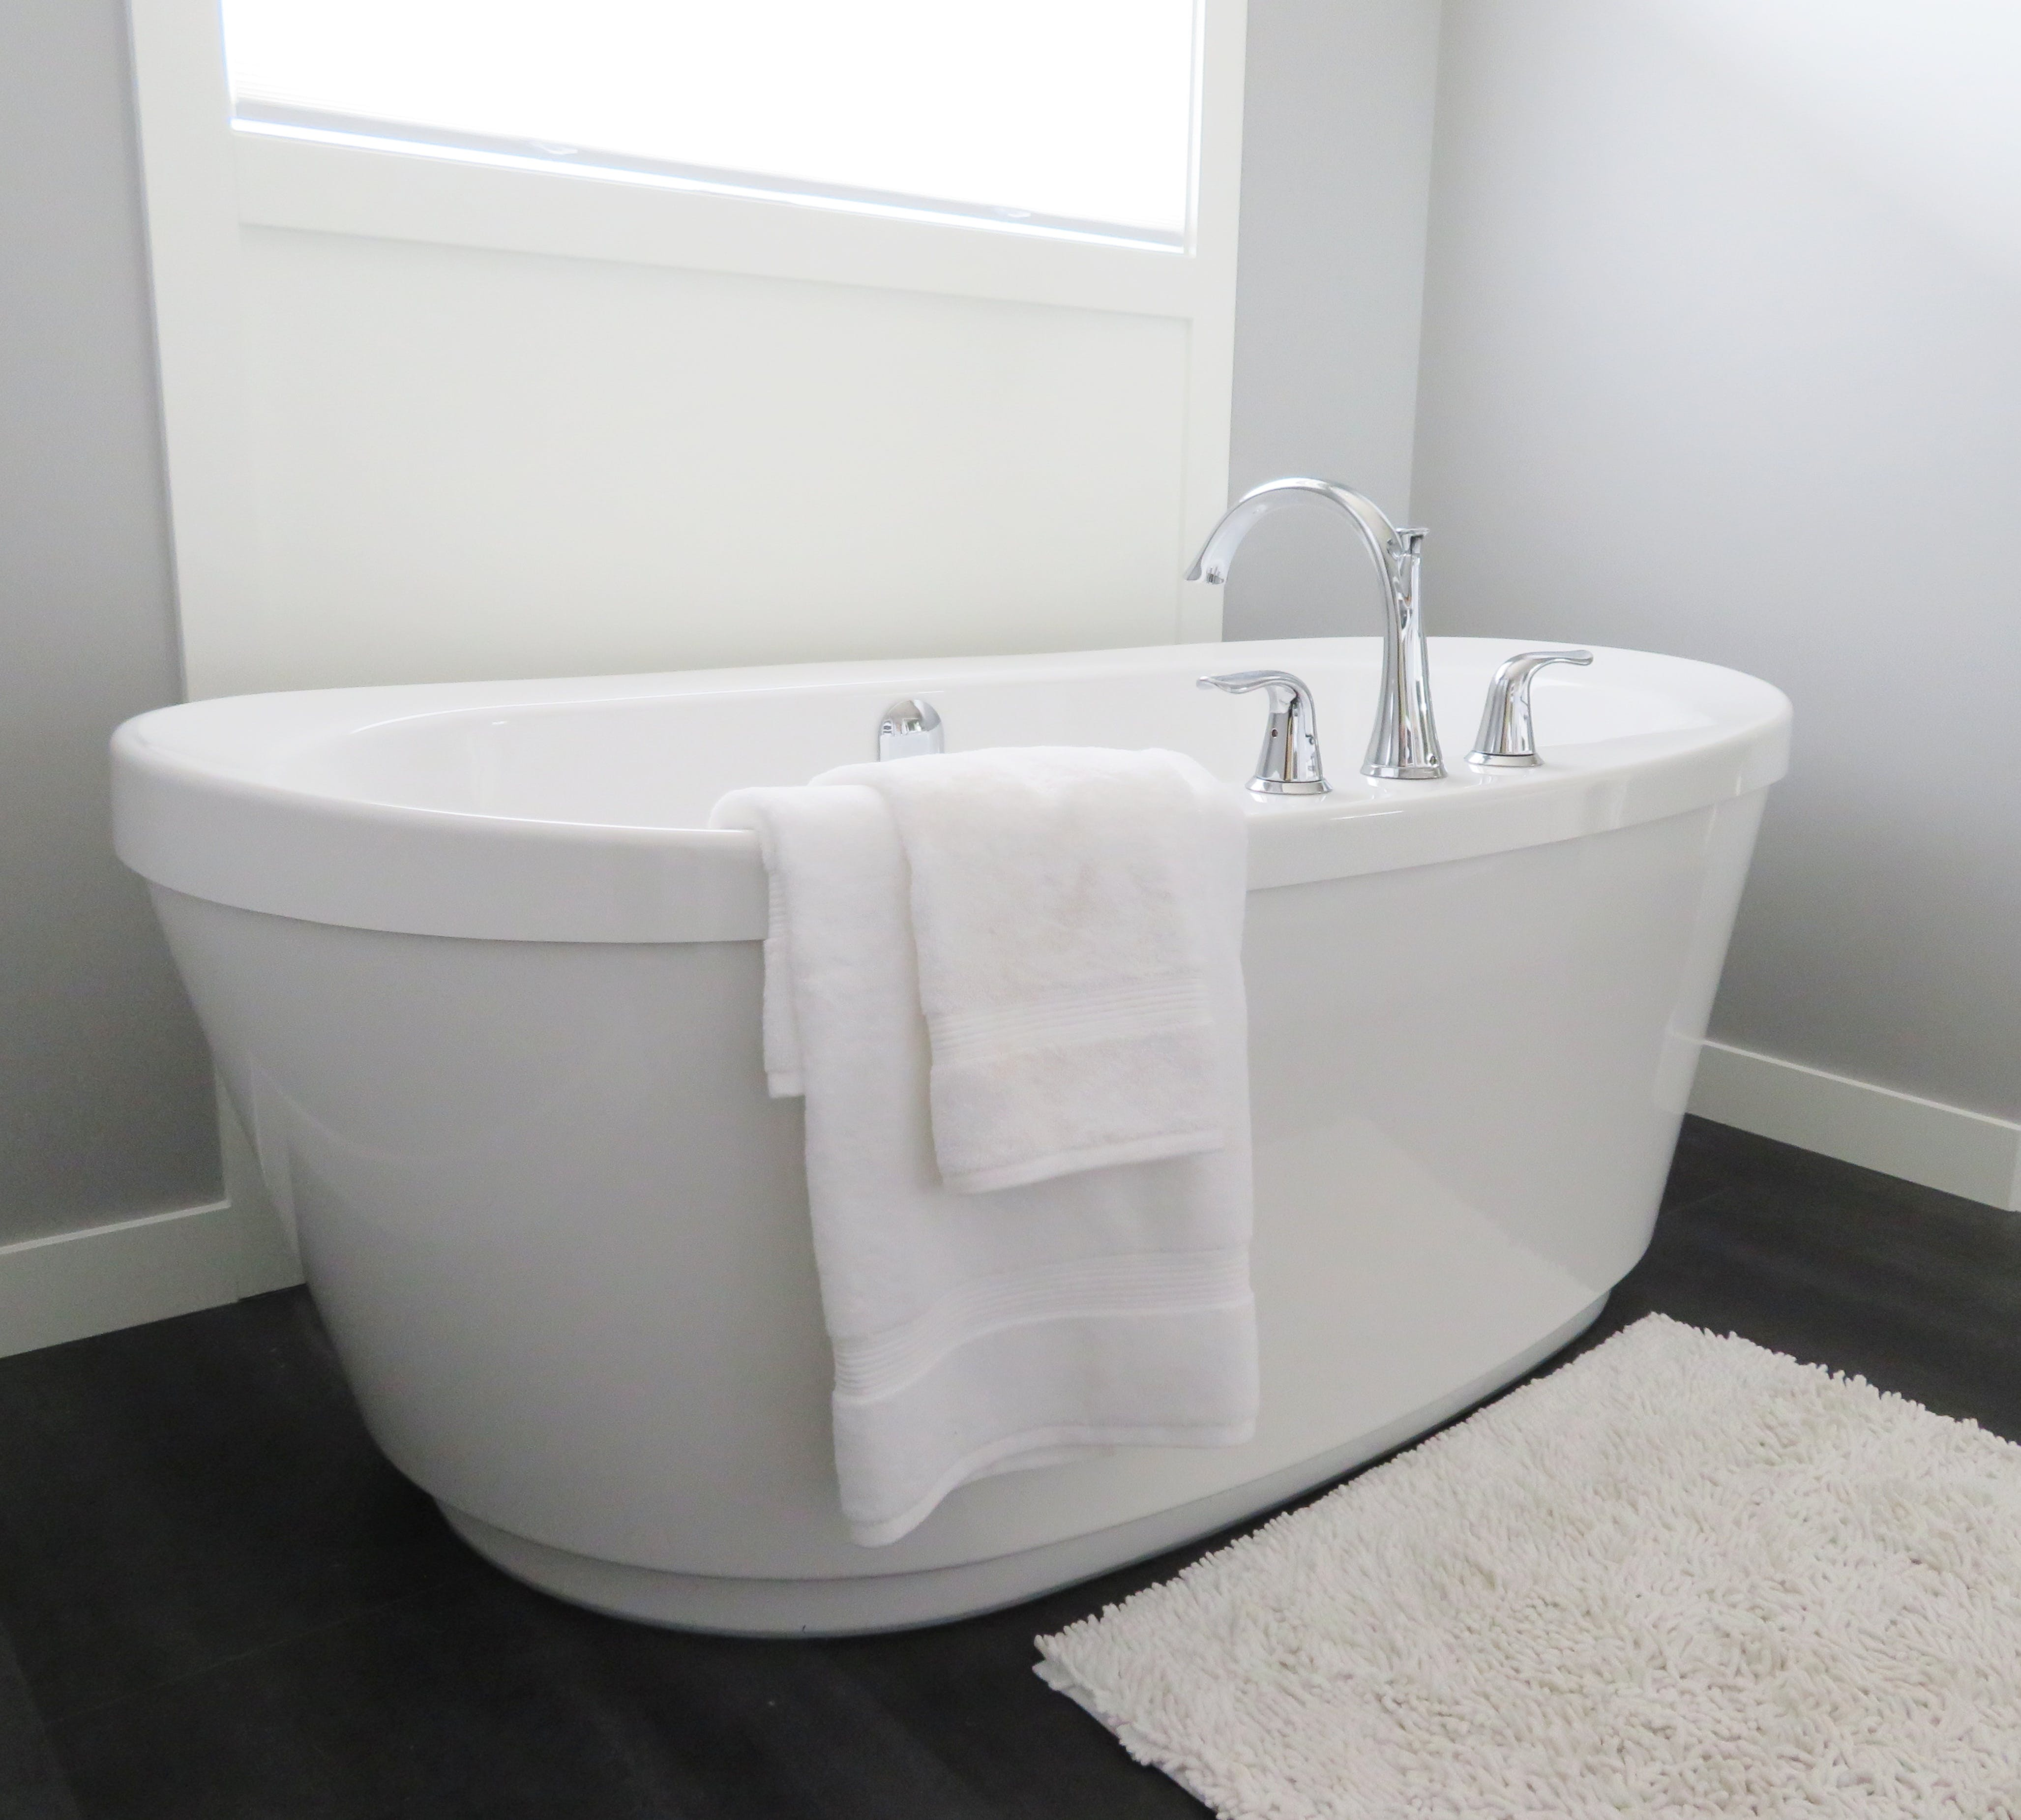 White Ceramic Bathtub Near Window